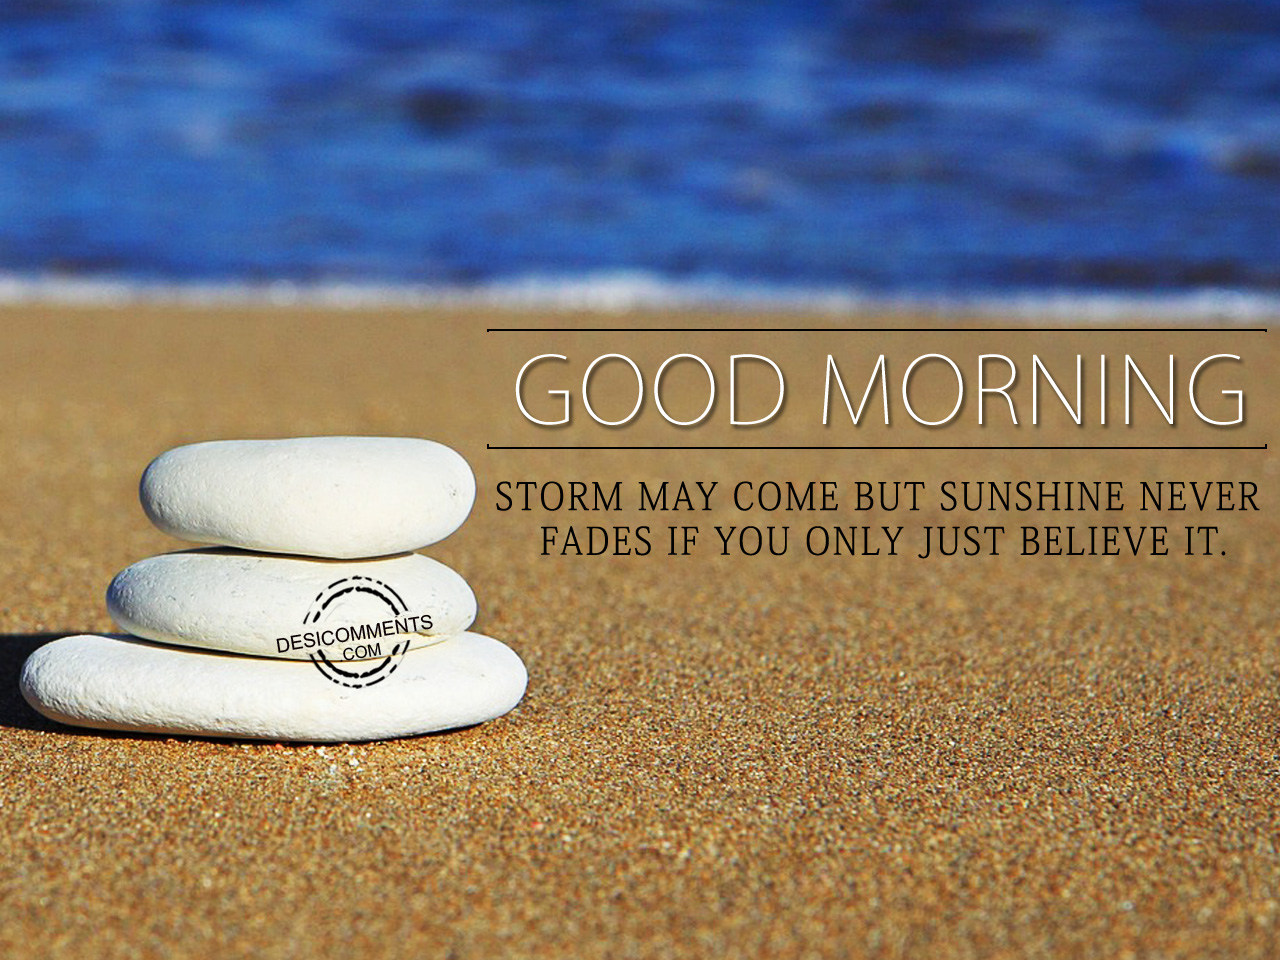 Good Morning Sunshine Quotes: Storm May Come But Sunshine Never Fades If You Only Just